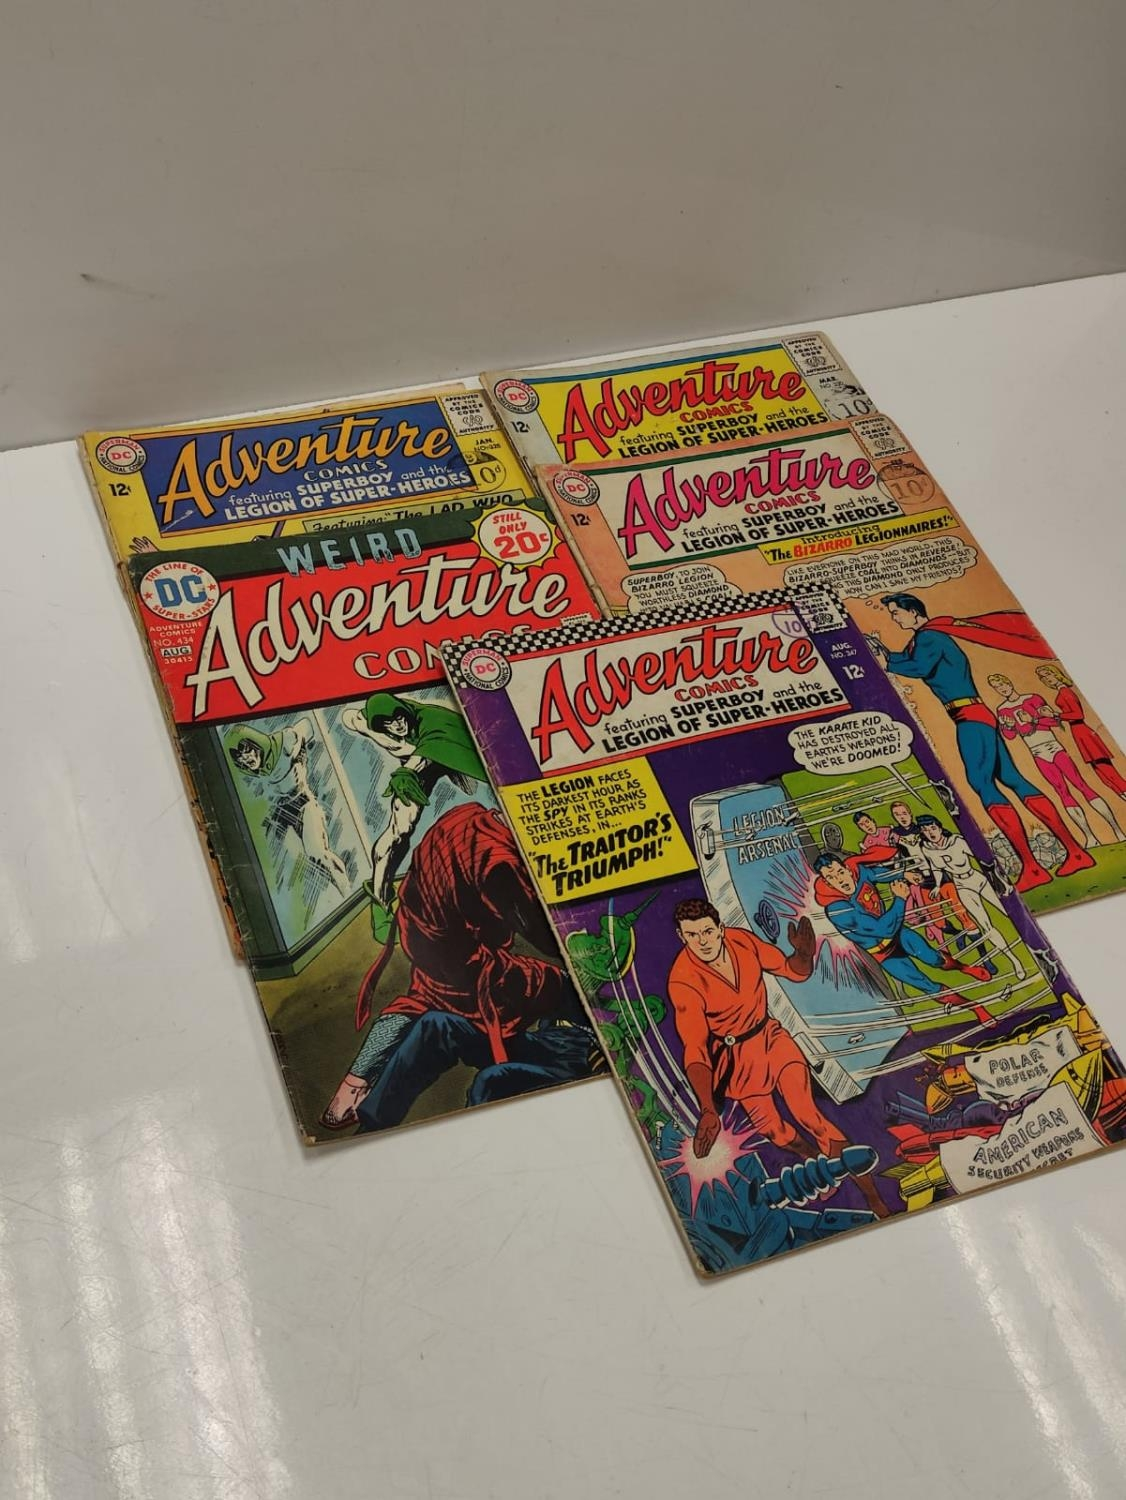 5 editions of DC Adventure Comics featuring Super-boy. - Image 19 of 19